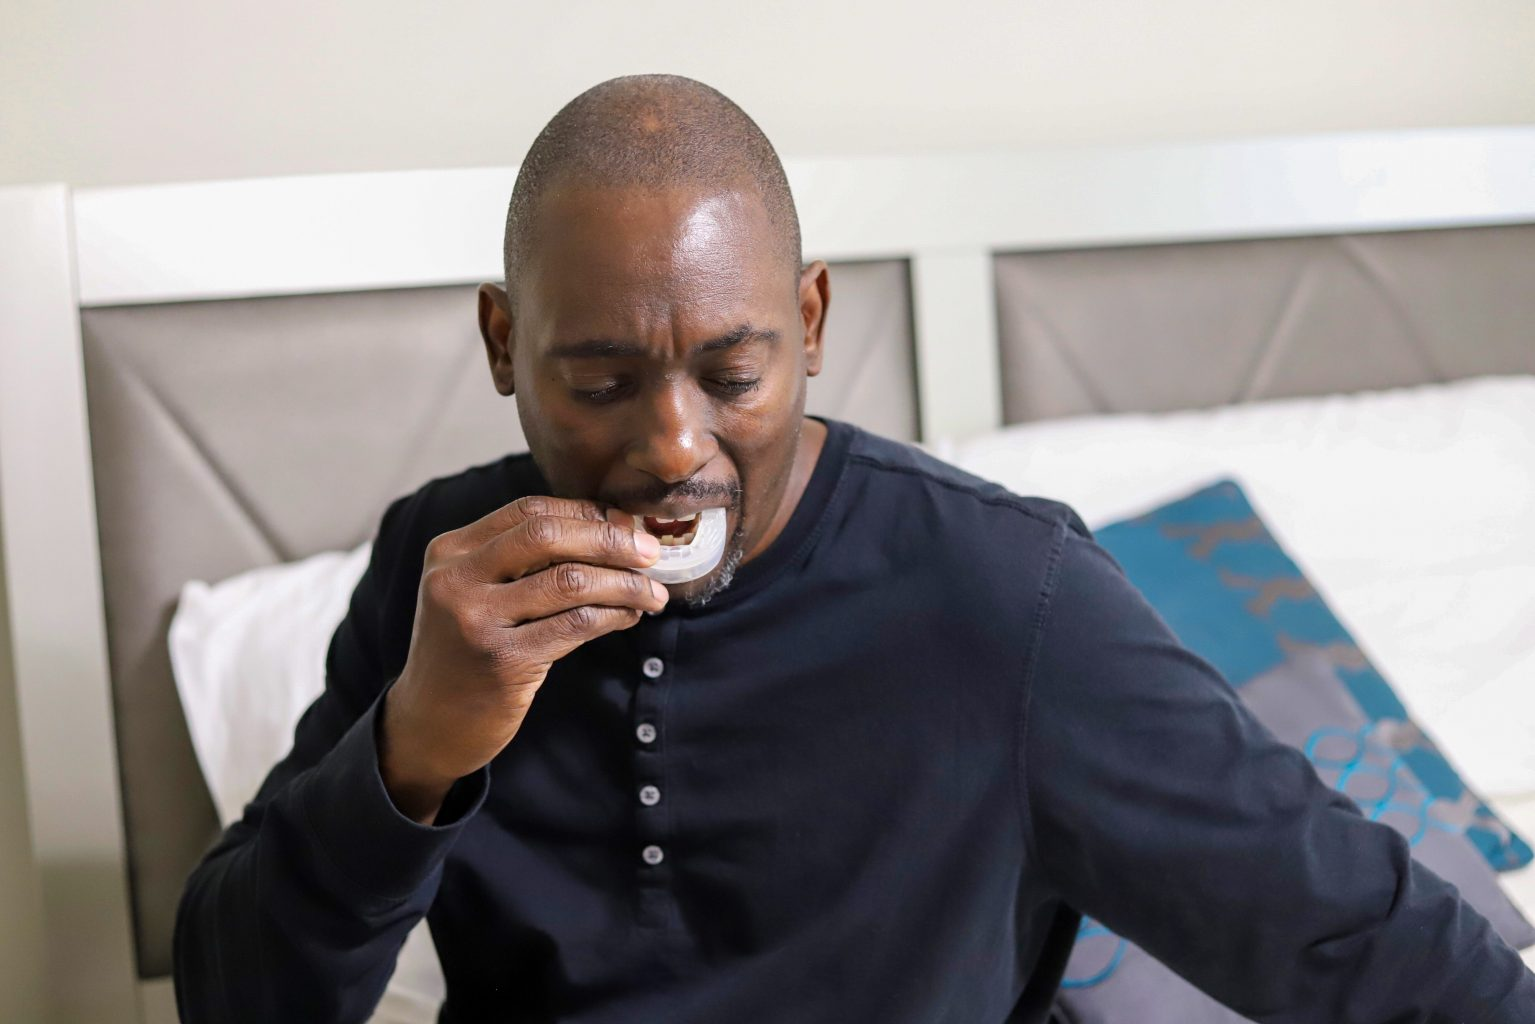 a portrait of an african american man using a snore mouth guard before bed